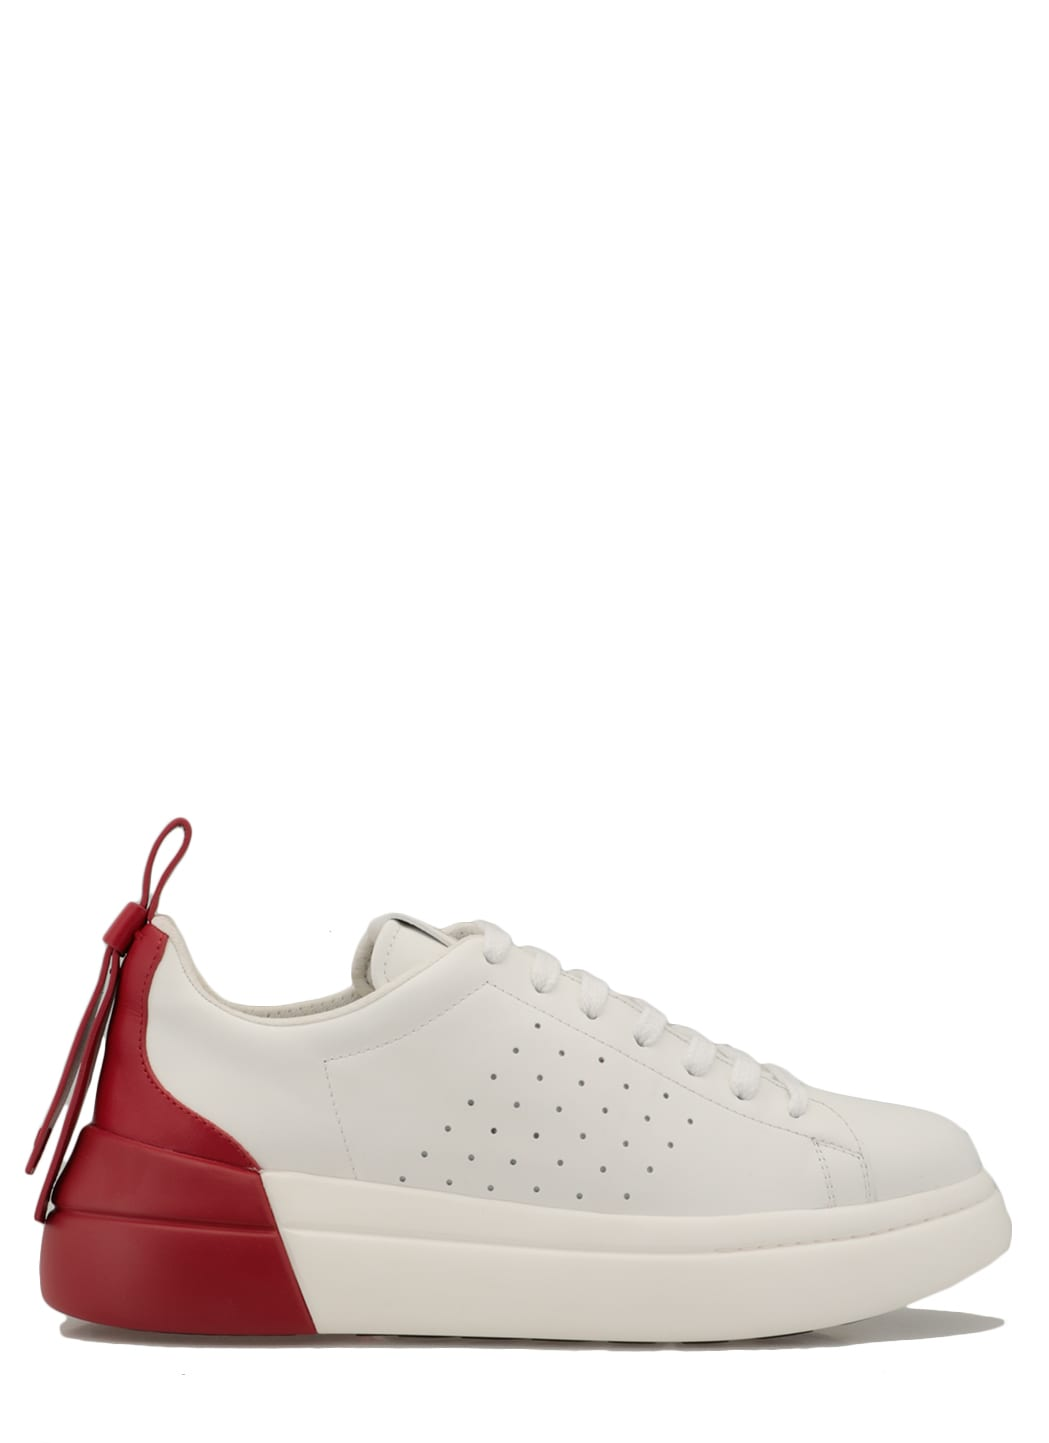 Buy RED Valentino Leather Sneaker online, shop RED Valentino shoes with free shipping